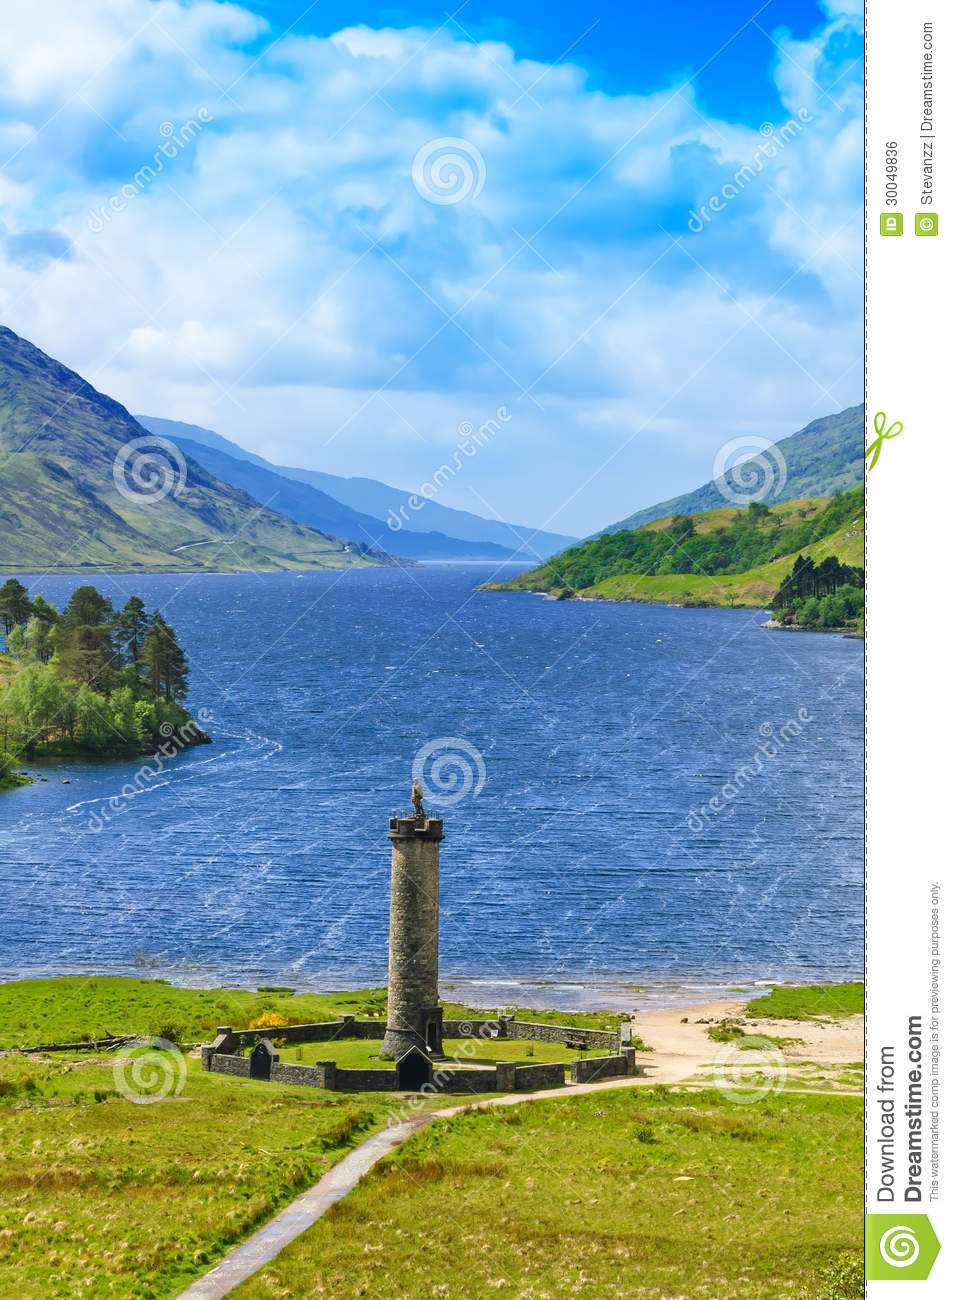 Glenfinnan United Kingdom  City pictures : Glenfinnan Monument And Loch Shiel Lake. Highlands Scotland Royalty ...